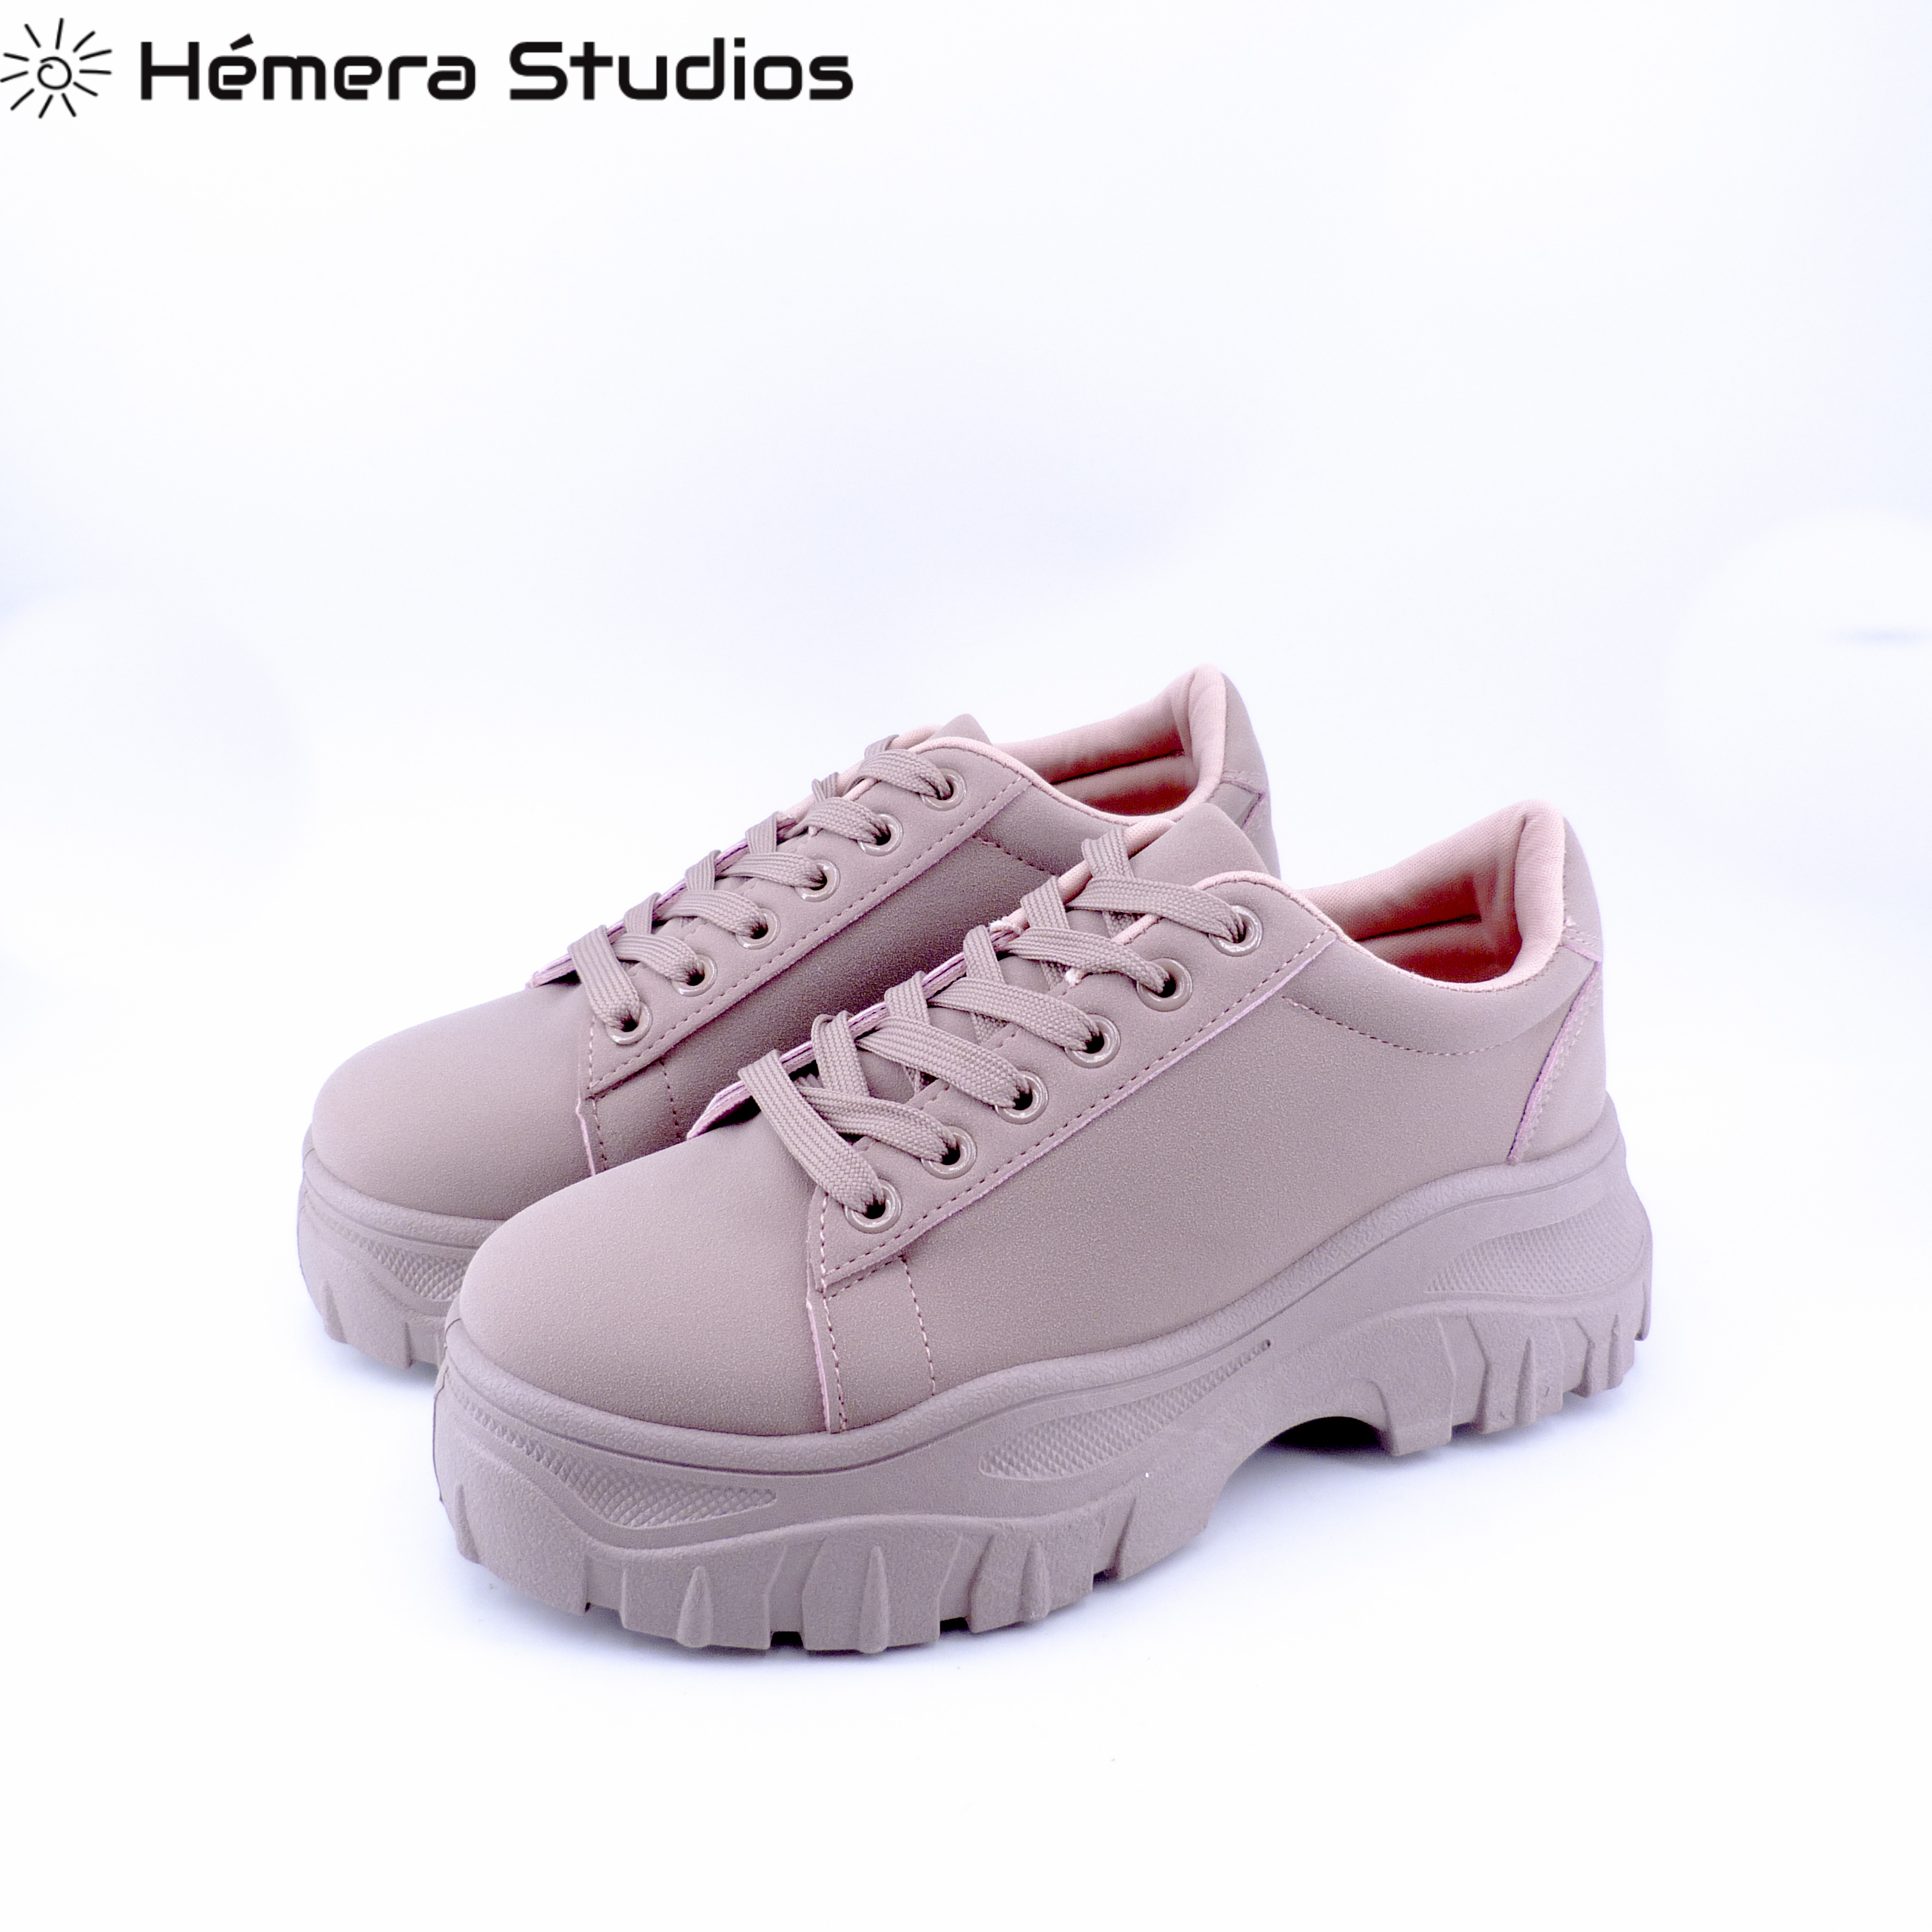 WOMAN SHOES 2019 WOMEN SHOES CASUAL WITH CORDS WITH PLATFORM 'S RUNNING SHOES MOUNTAIN